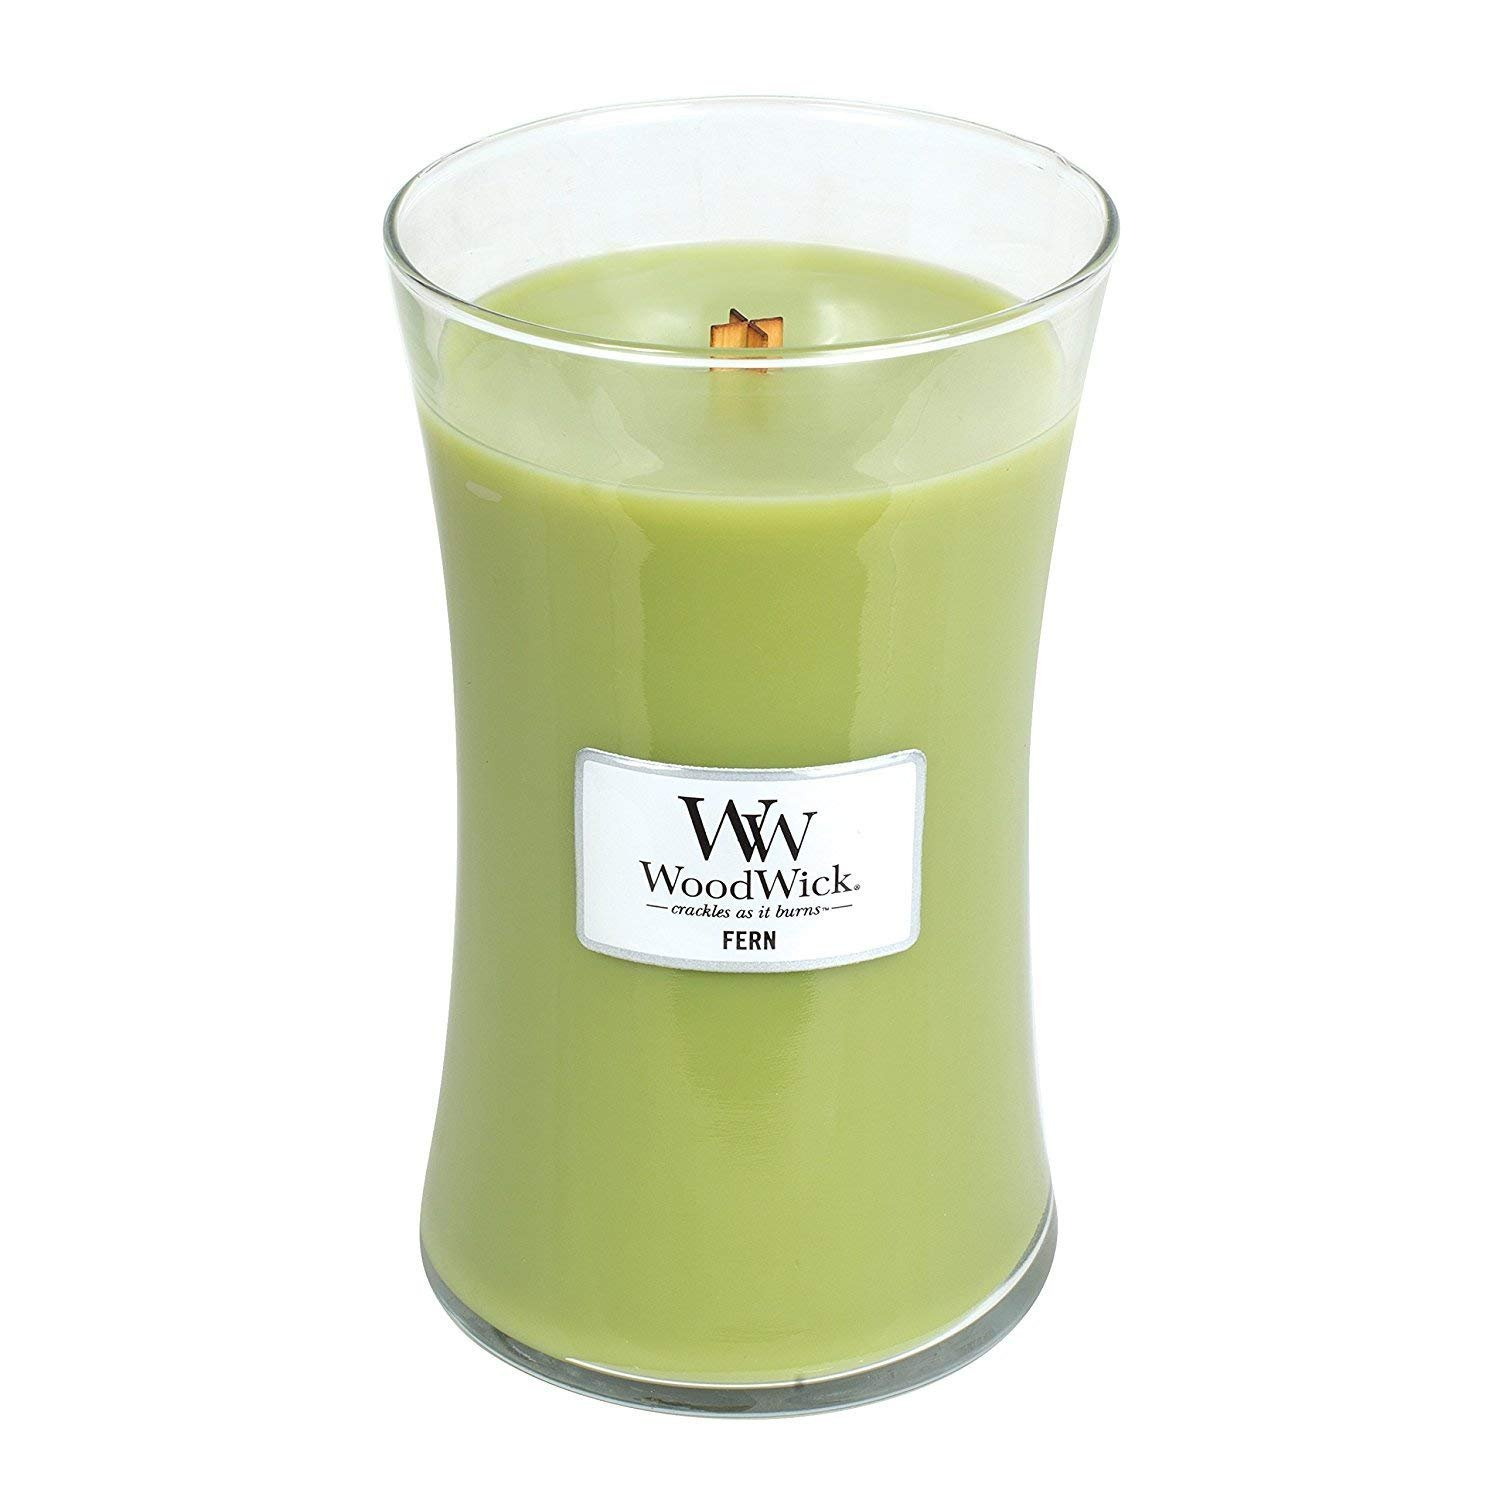 WoodWick Medium Hourglass Scented Candle, Fern 92189E